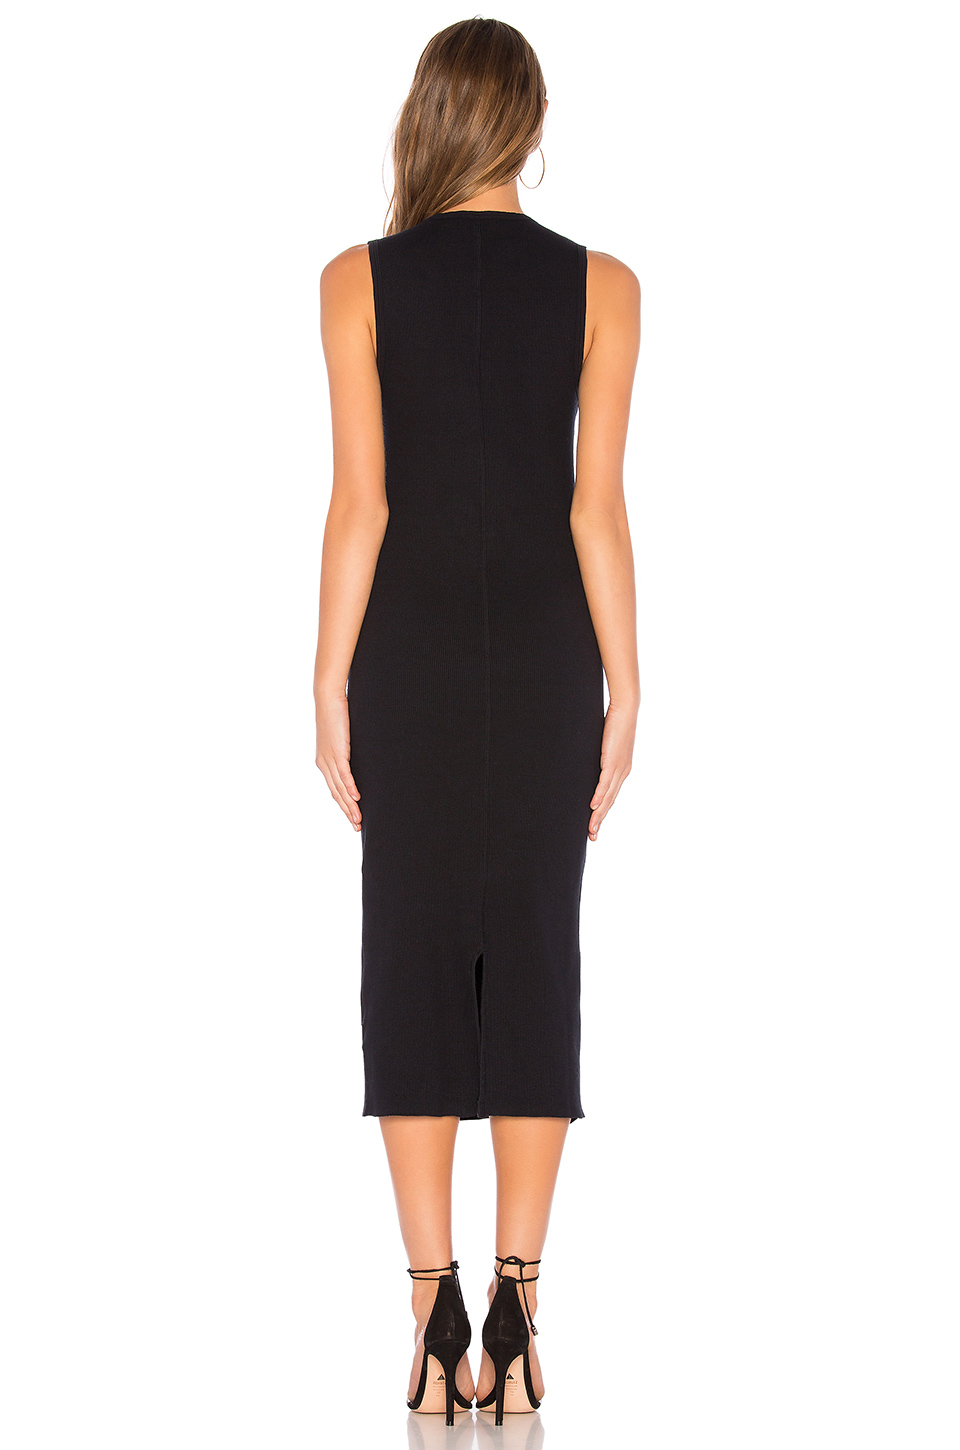 James Perse Contrast Binding Fitted Rib Dress